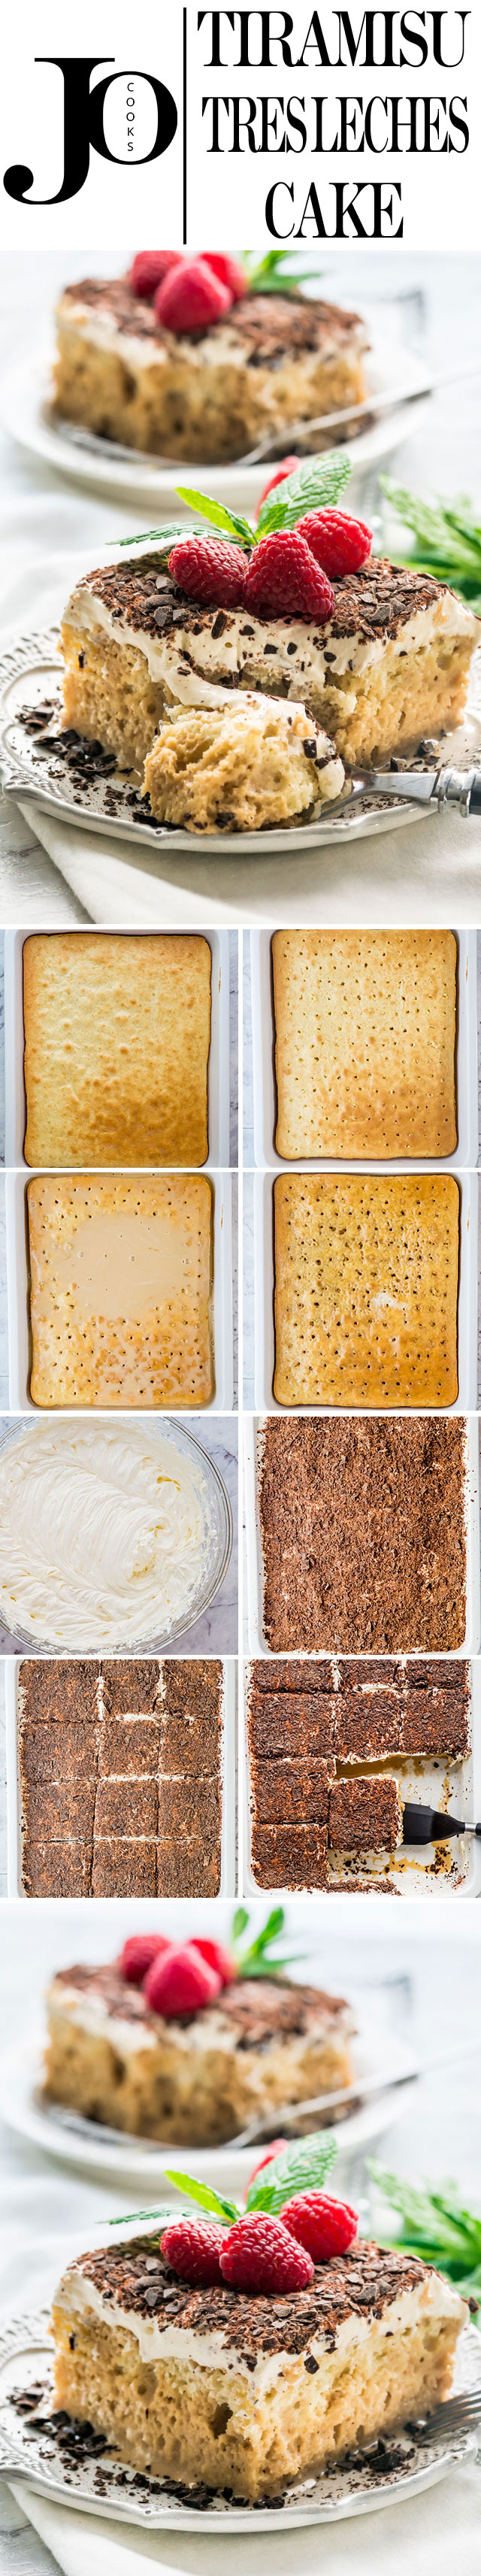 This Tiramisu Tres Leches Cake combines two classics into one incredibly delicious and decadent cake. This elegant Tres Leches Cake espresso spiked, topped with a heavenly mascarpone topping is perfect and truly special. #tiramisu #tresleches